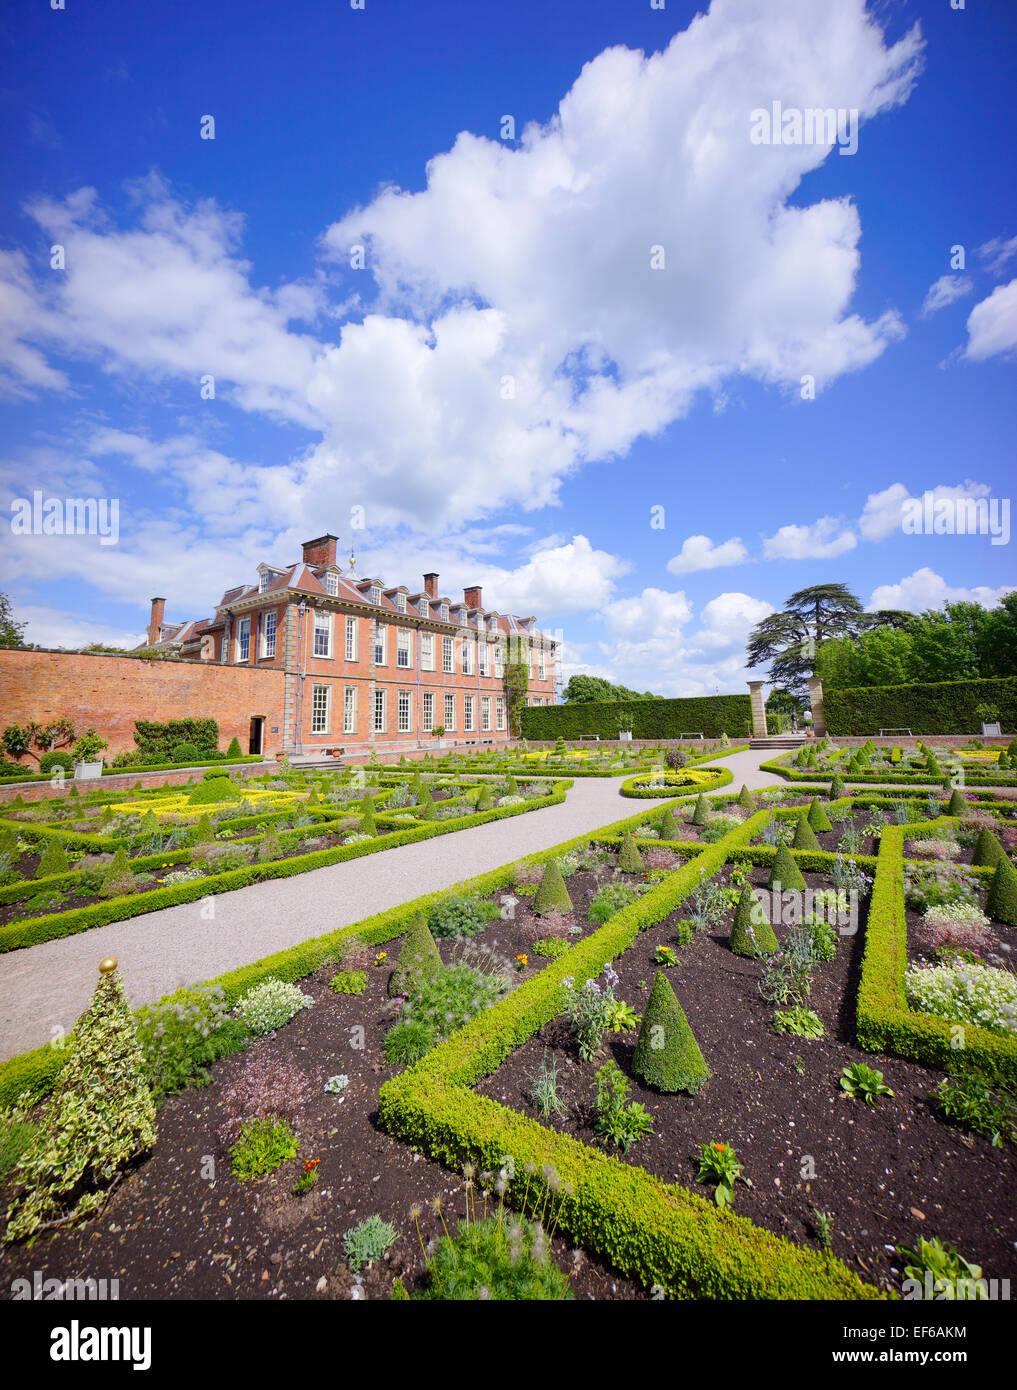 aristocracy, country, england, english, family, gardens, gb, hall, home, house, mansion, midlands, national, nobility, - Stock Image